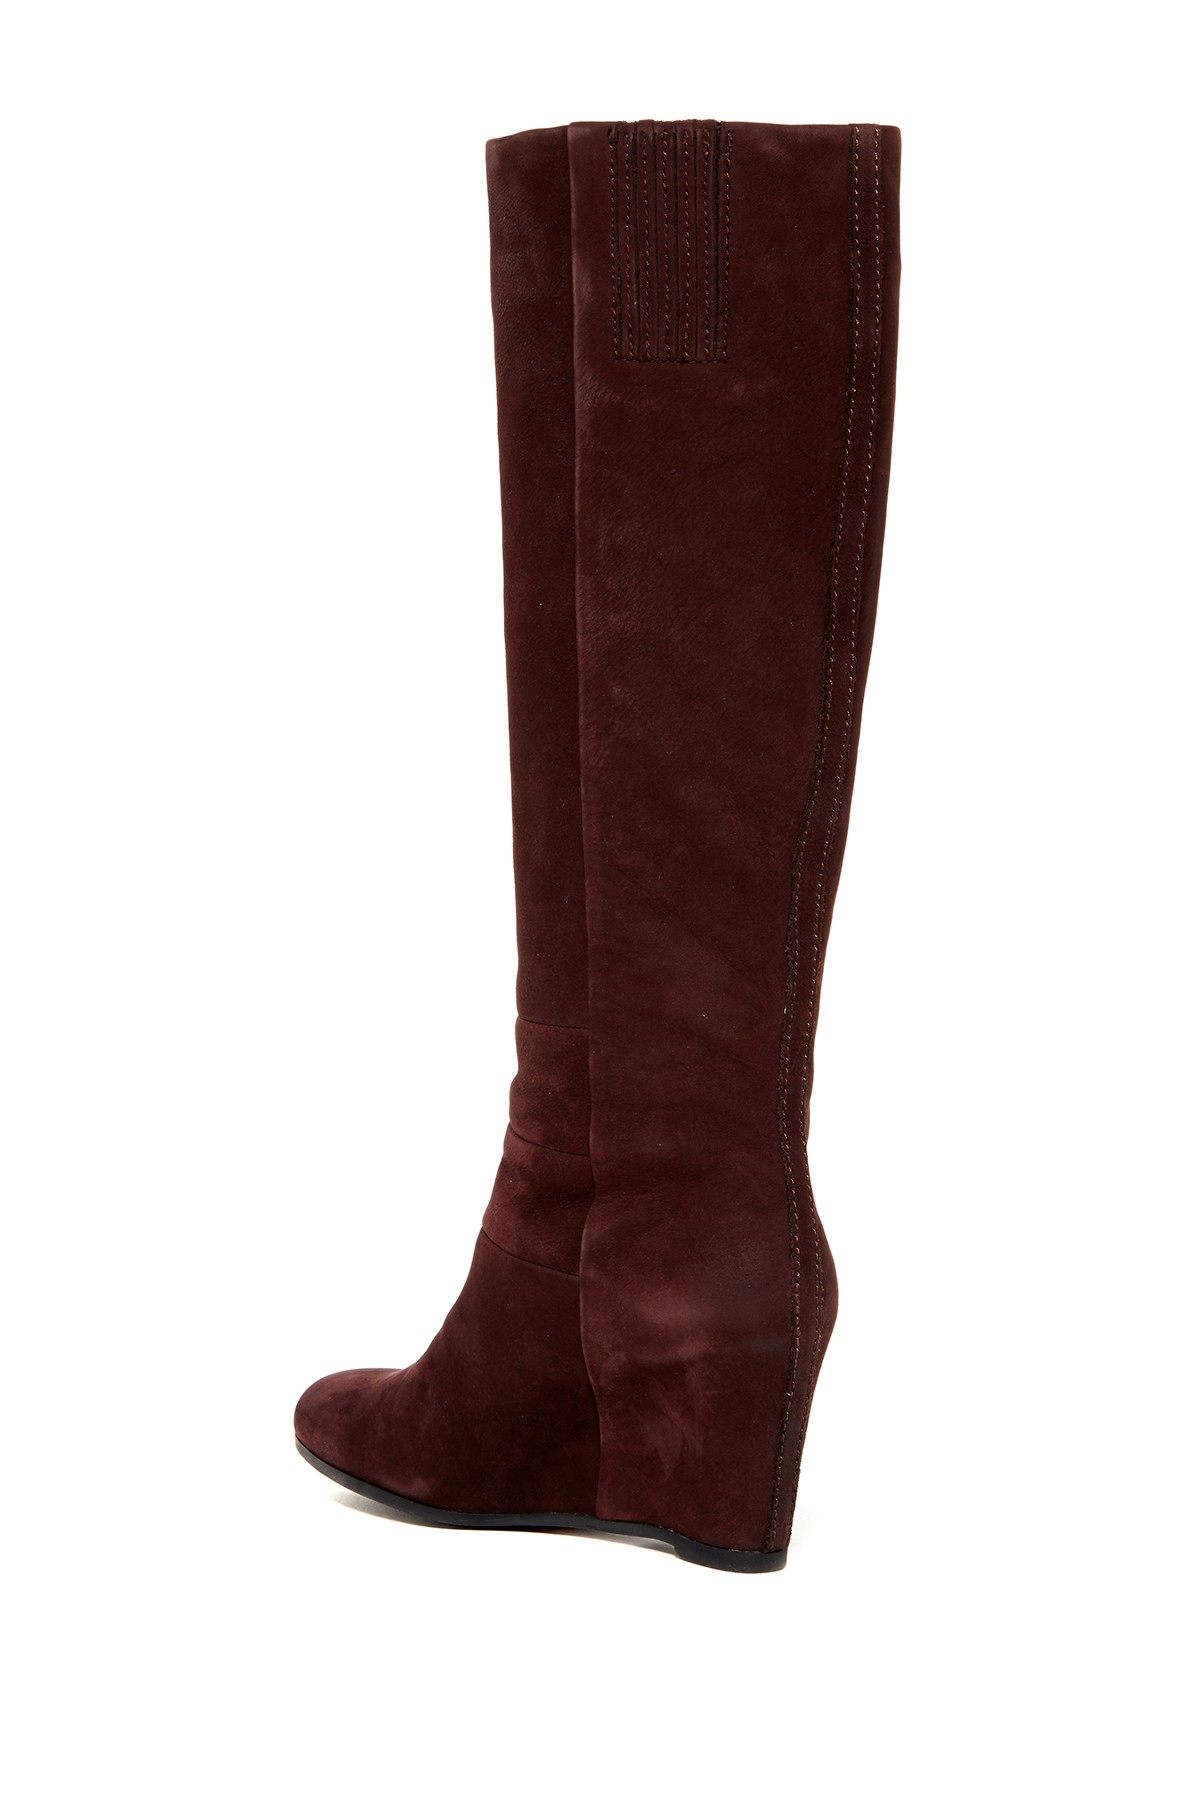 geox ultraviolet suede wedge high boot in brown lyst